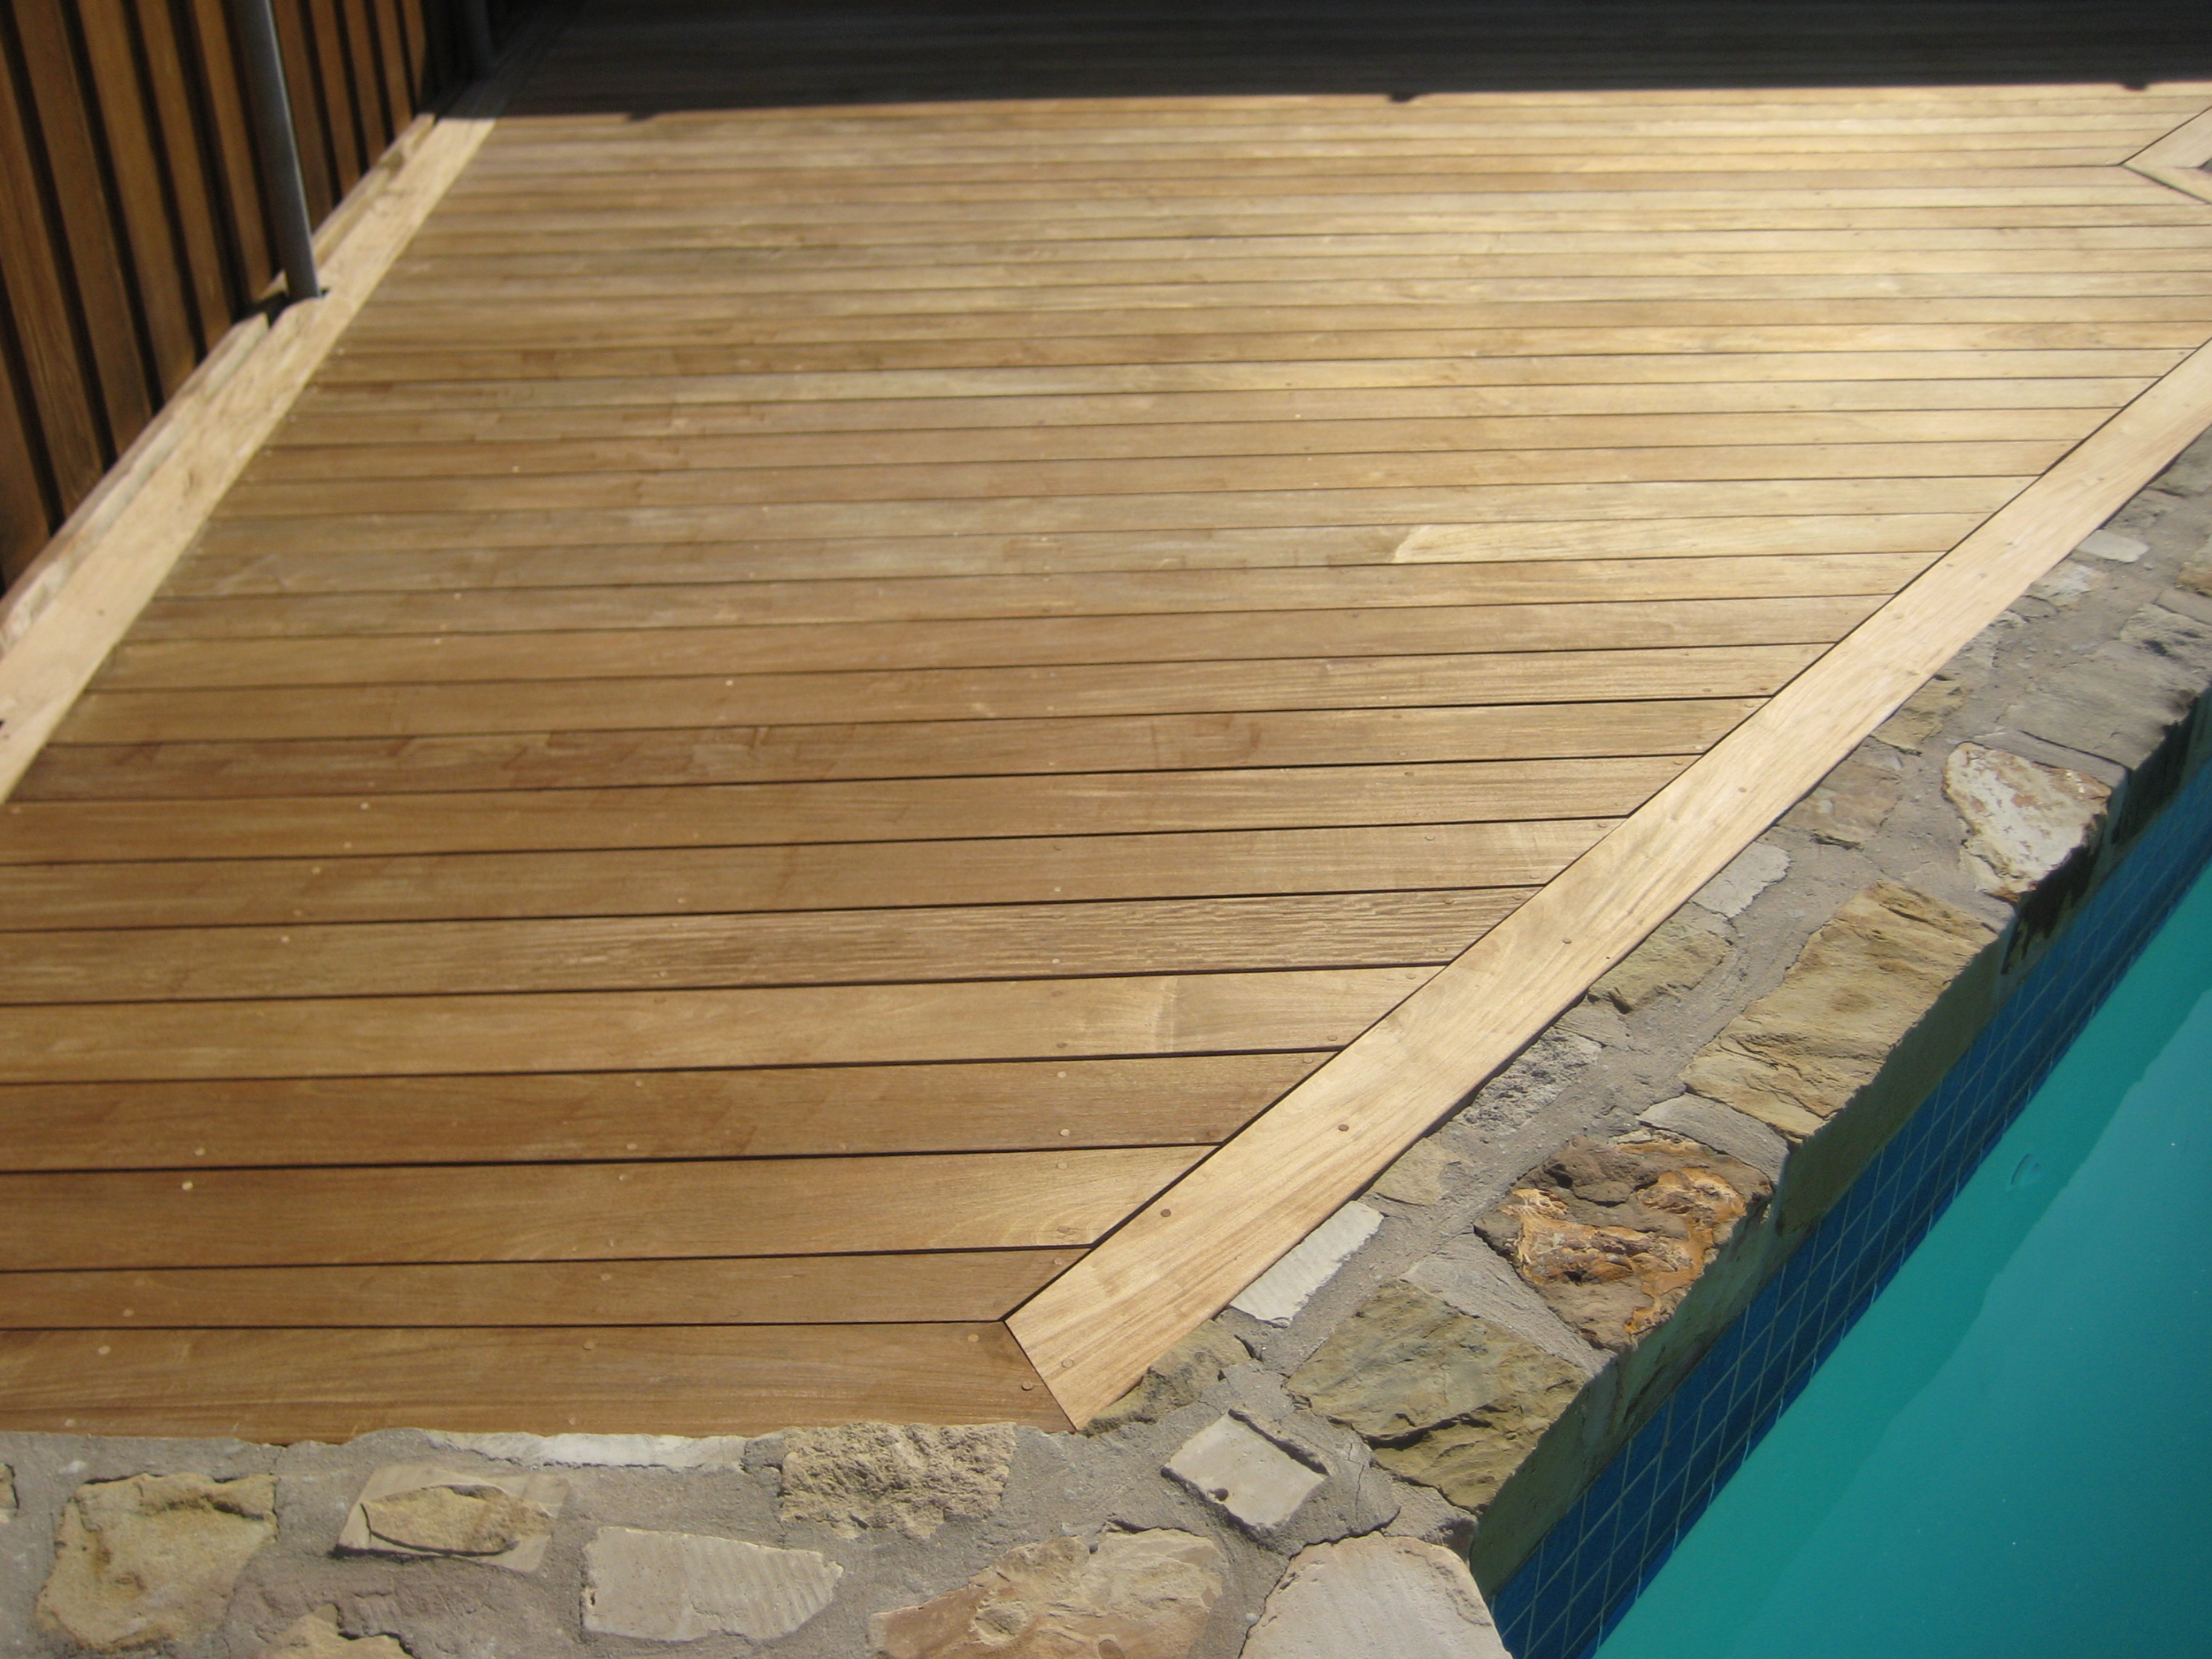 How to clean an ipe deck or other wood deck edeck inc blog for What is the best wood for decking